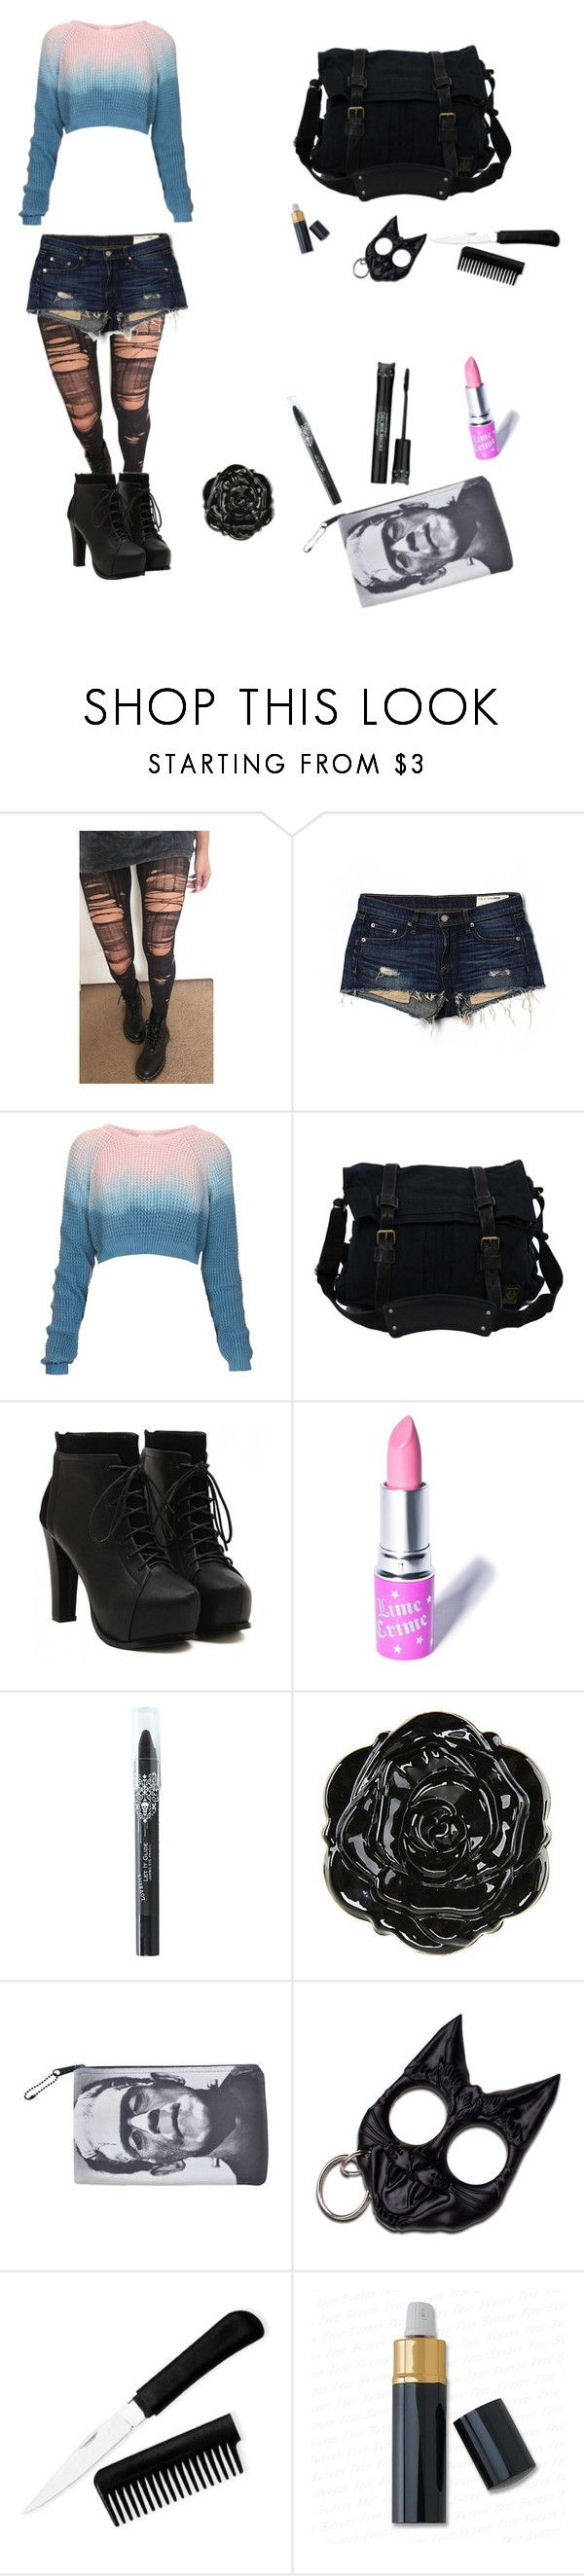 """Untitled #13"" by dino-nuggets ❤ liked on Polyvore featuring rag & bone/JEAN, The Ragged Priest, Belstaff, Lime Crime and Tony Moly"